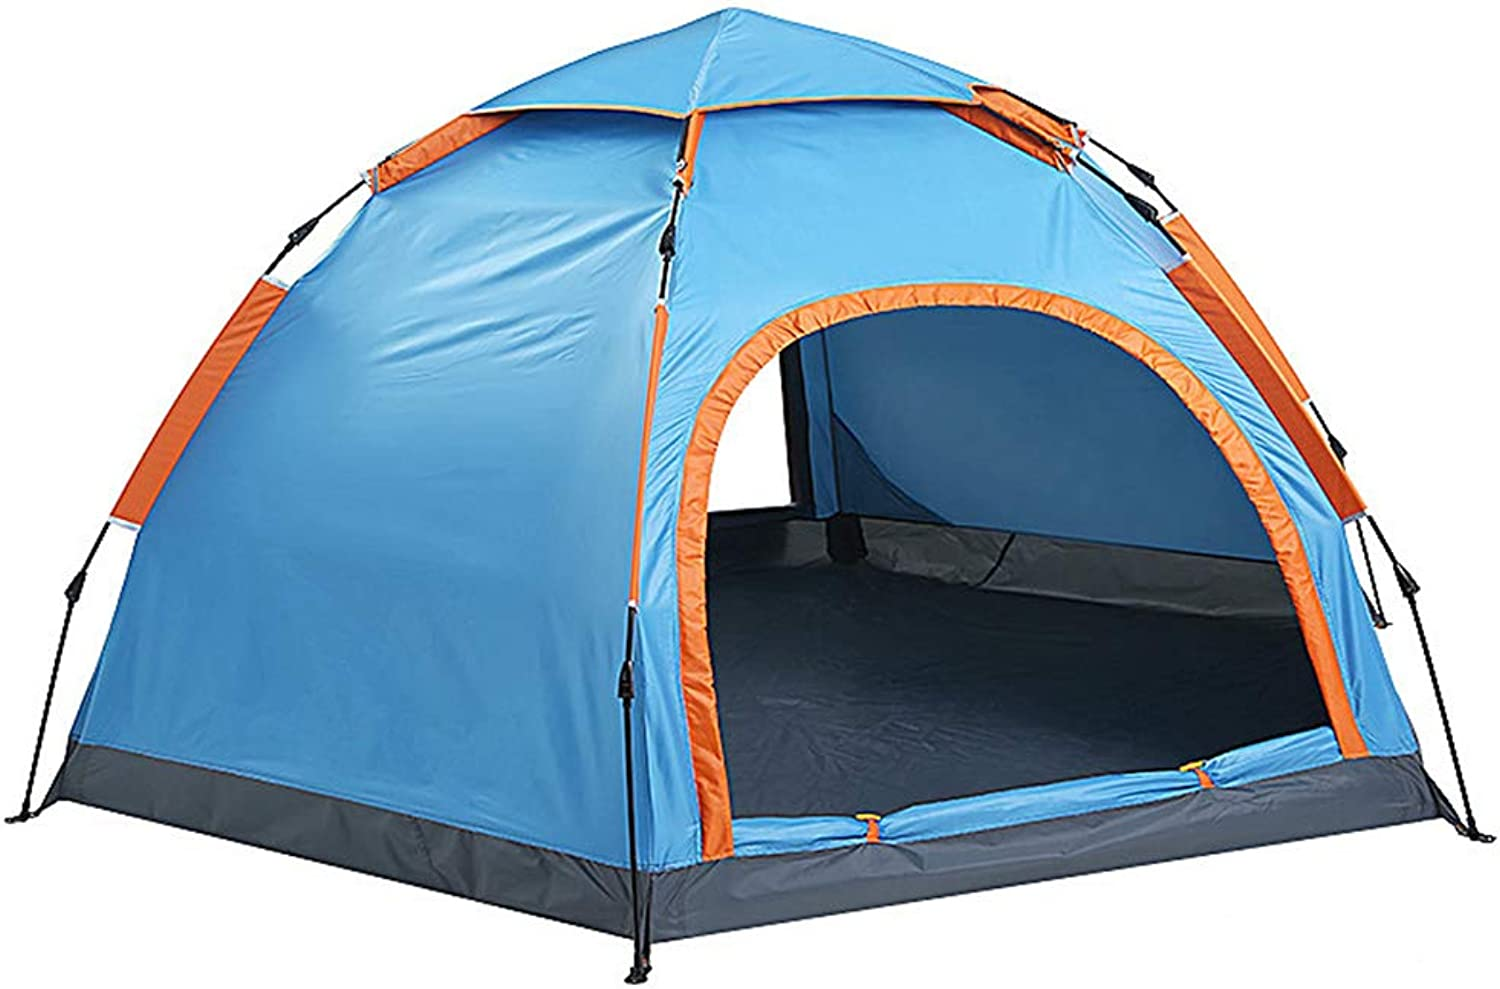 Outdoor Double Door Dome Tent, Easy to use Can Live 34 People Ventilated Waterproof Durable Suitable for Park Beaches, bluee